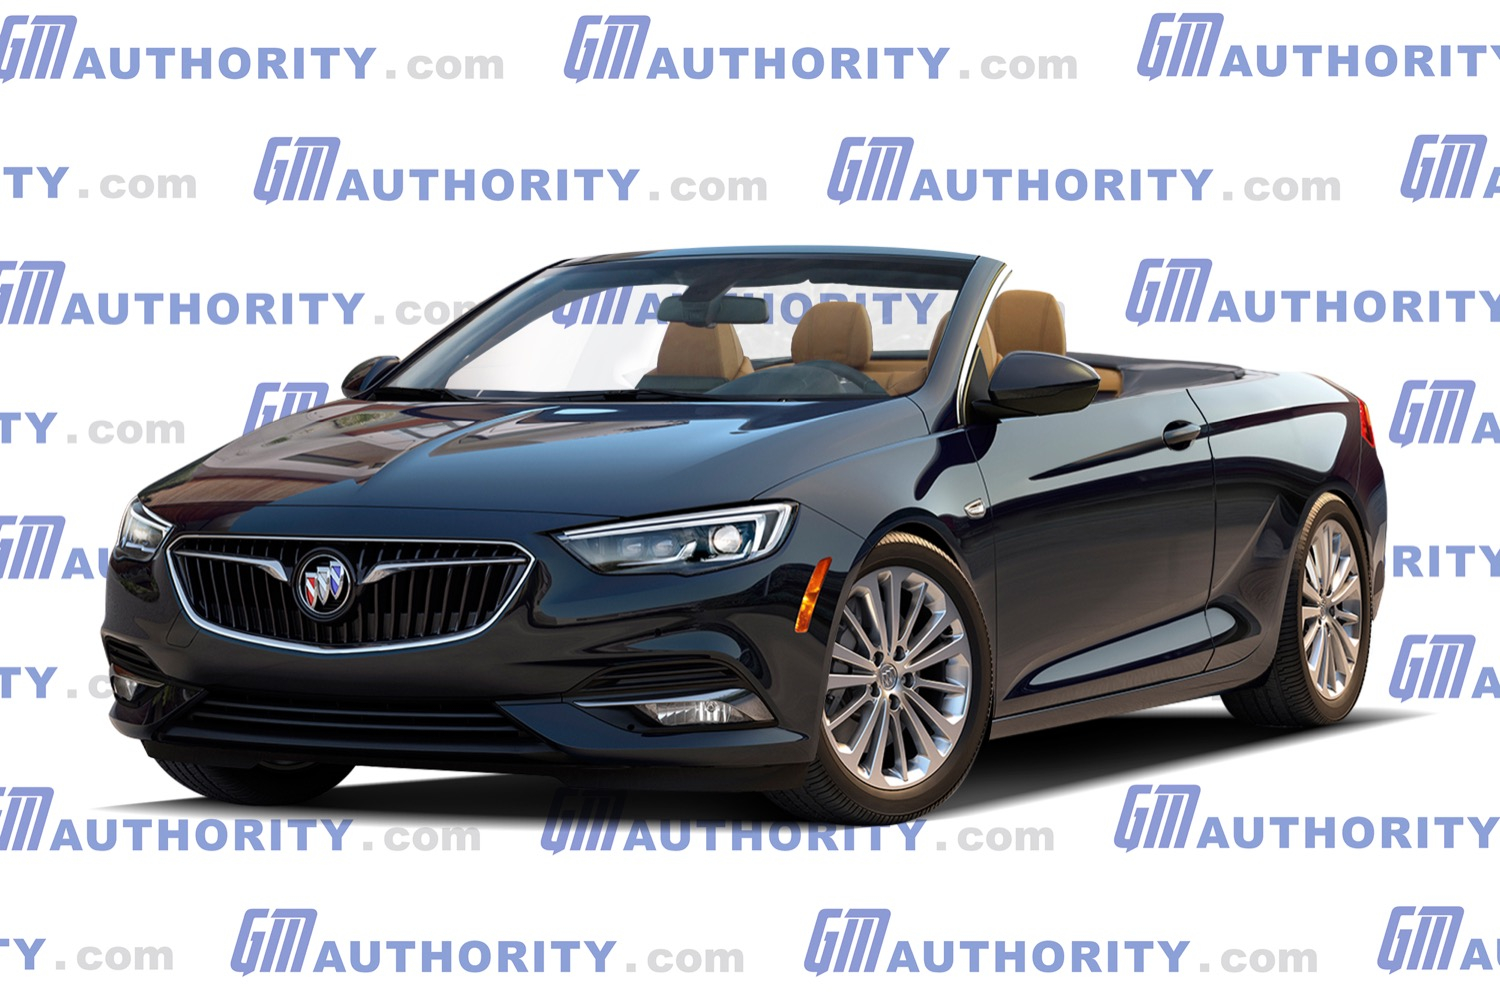 Buick Regal Convertible Rendered | Gm Authority 2021 Buick Cascada Awd, Build And Price, Engine